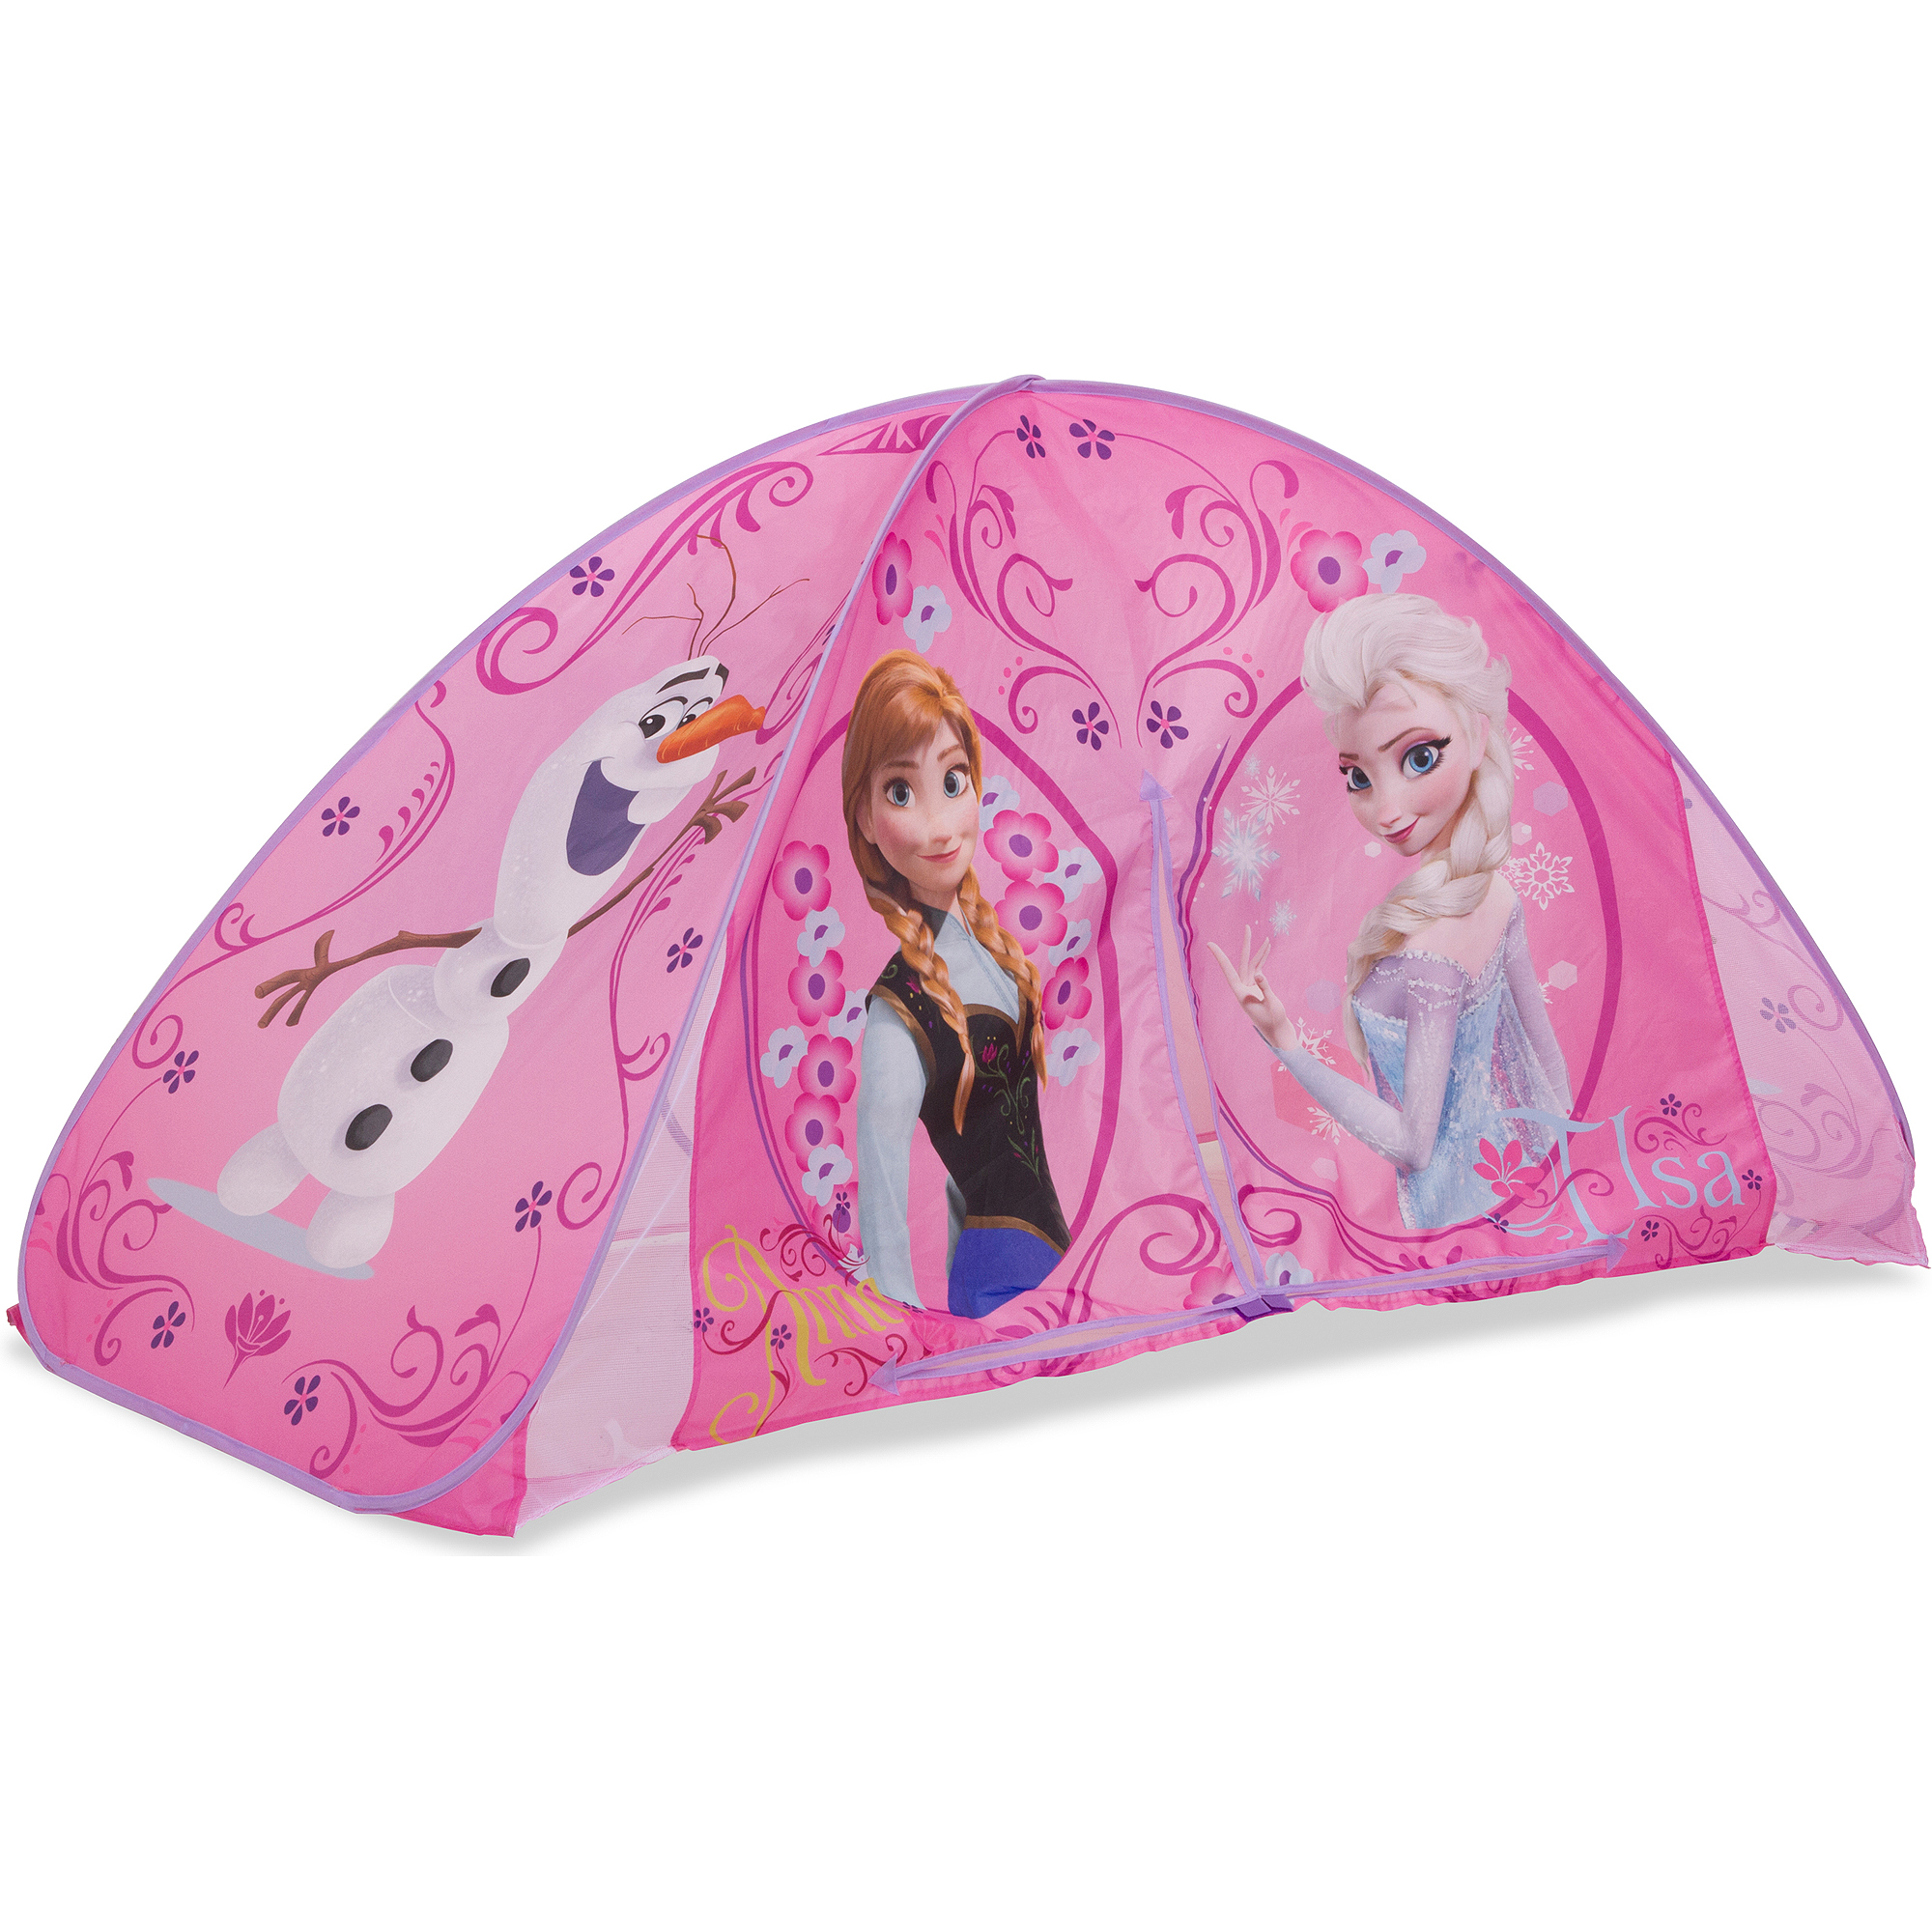 Disney Frozen 2-in-1 Play Tent  sc 1 st  Walmart.com & Disney Frozen 2-in-1 Play Tent - Walmart.com